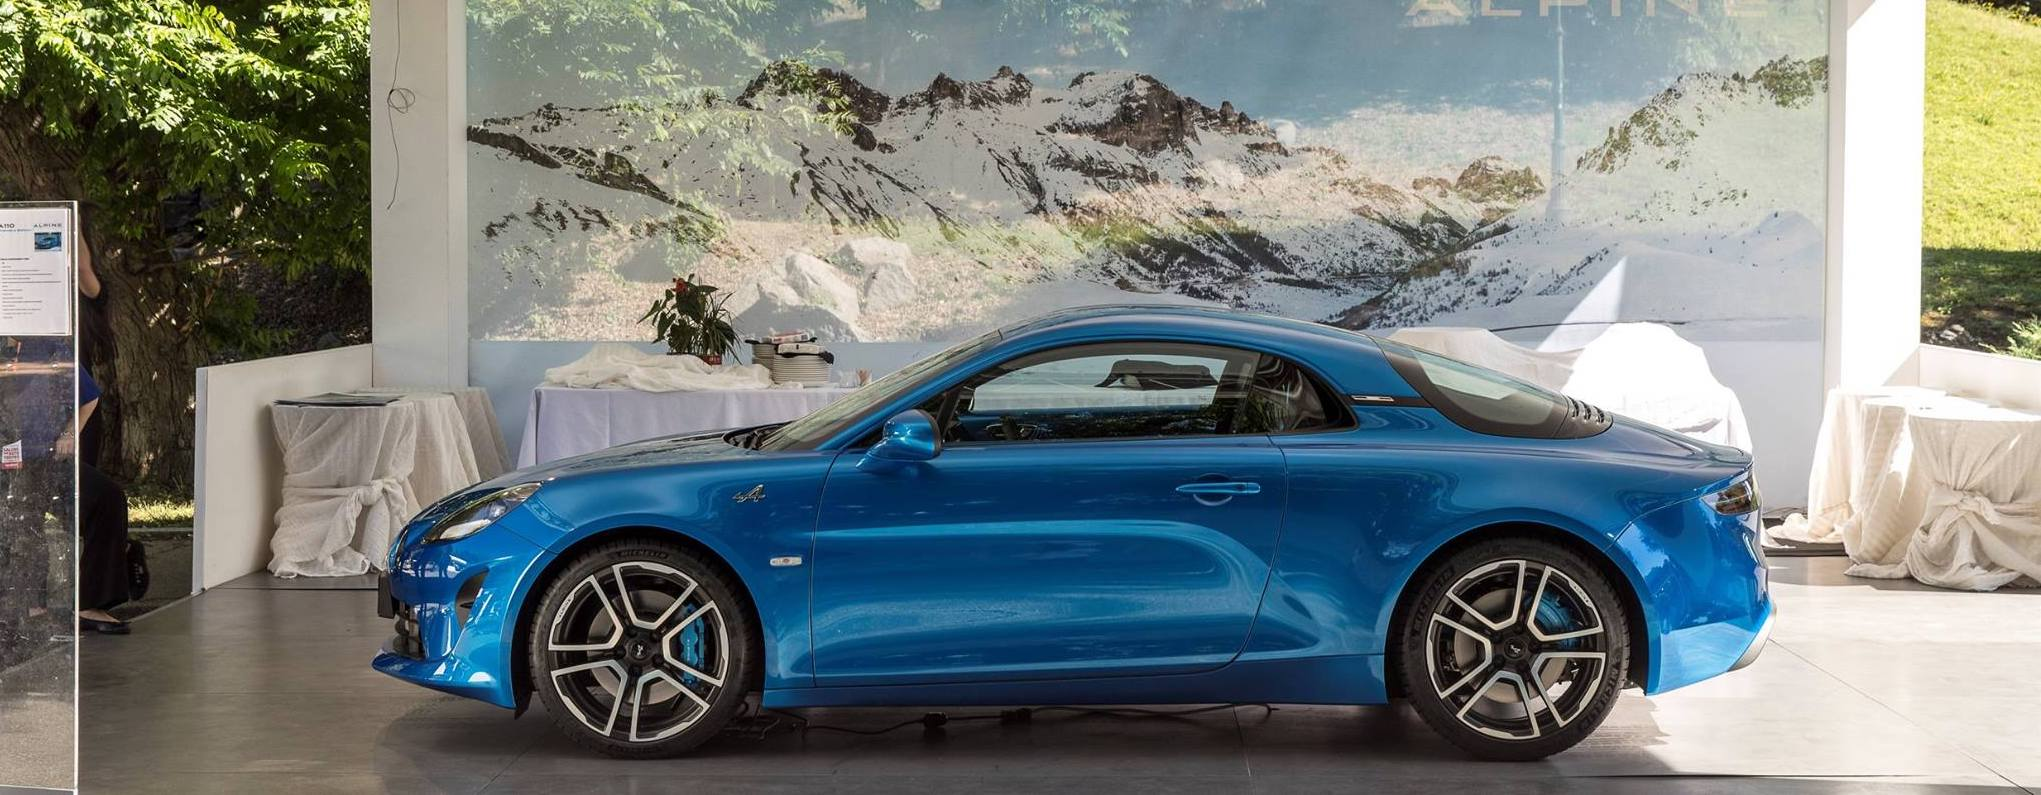 L'Alpine A110 pose au Salon de Turin !